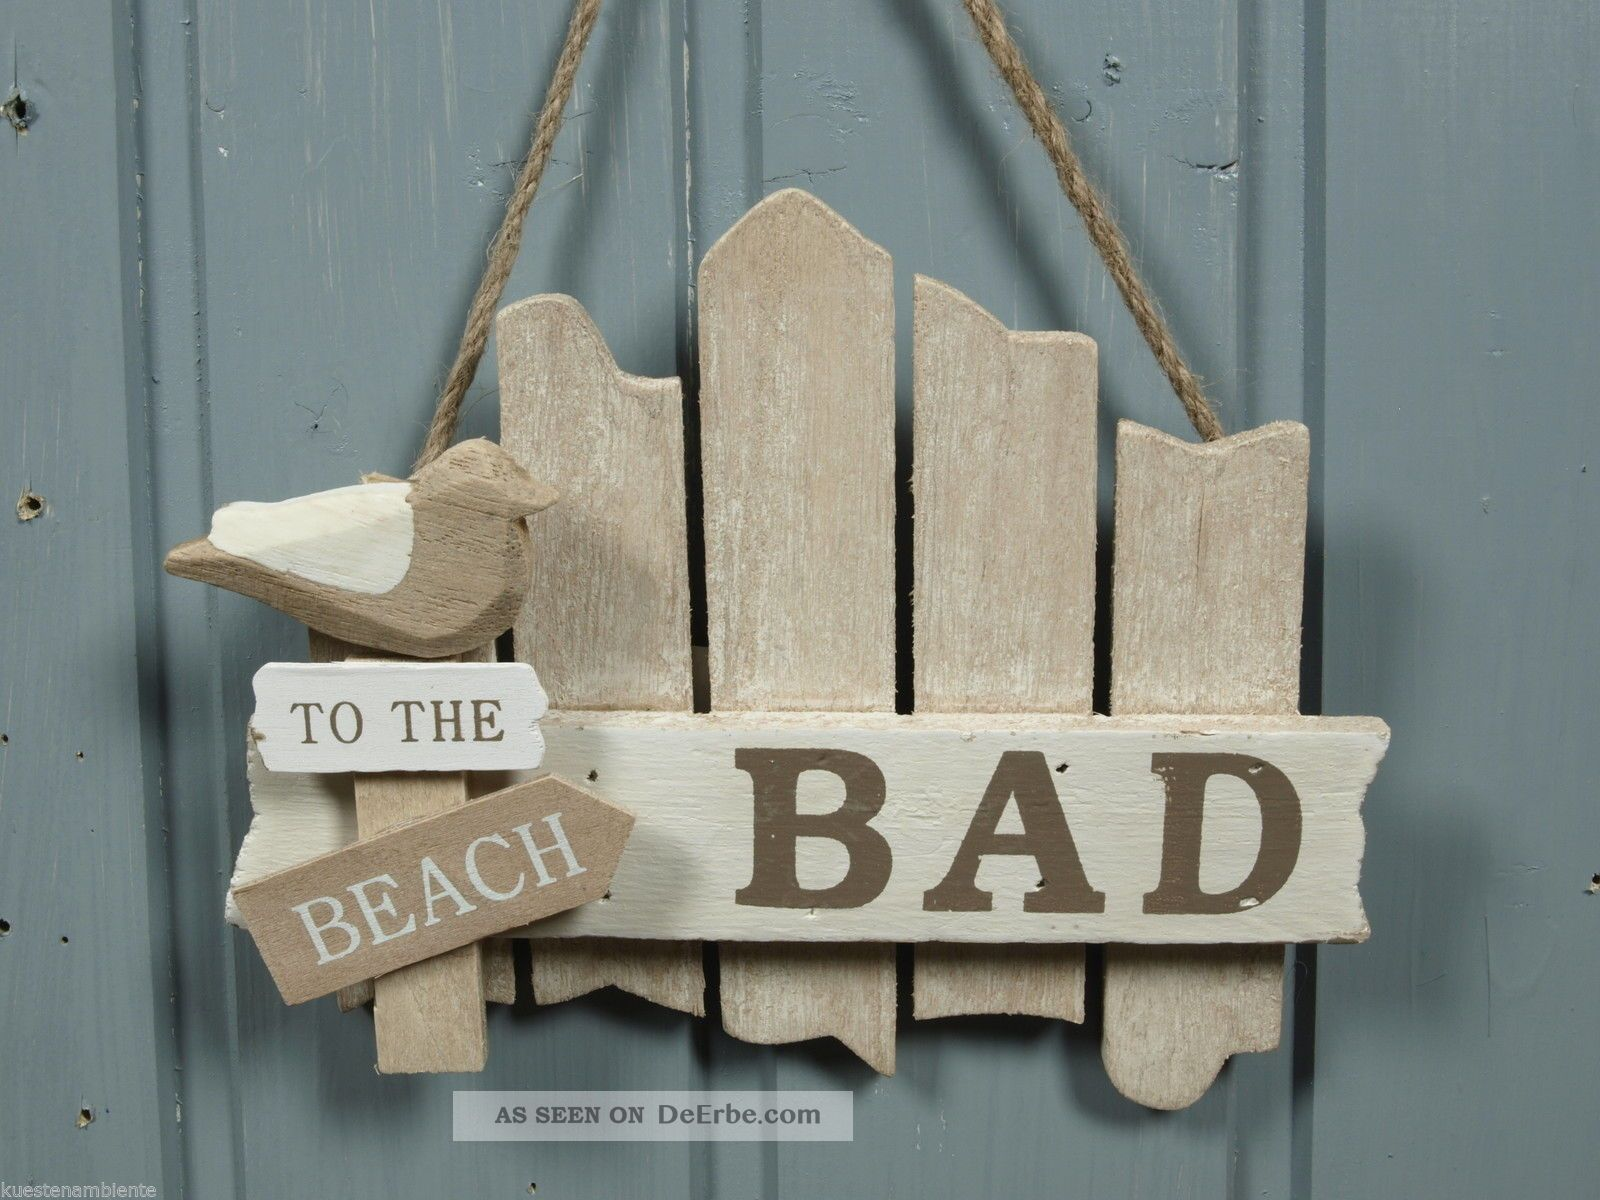 ... bad__aus_holz__to_the_beach__ca___17x14cm_maritime_bad_deko_1_lgw.jpg